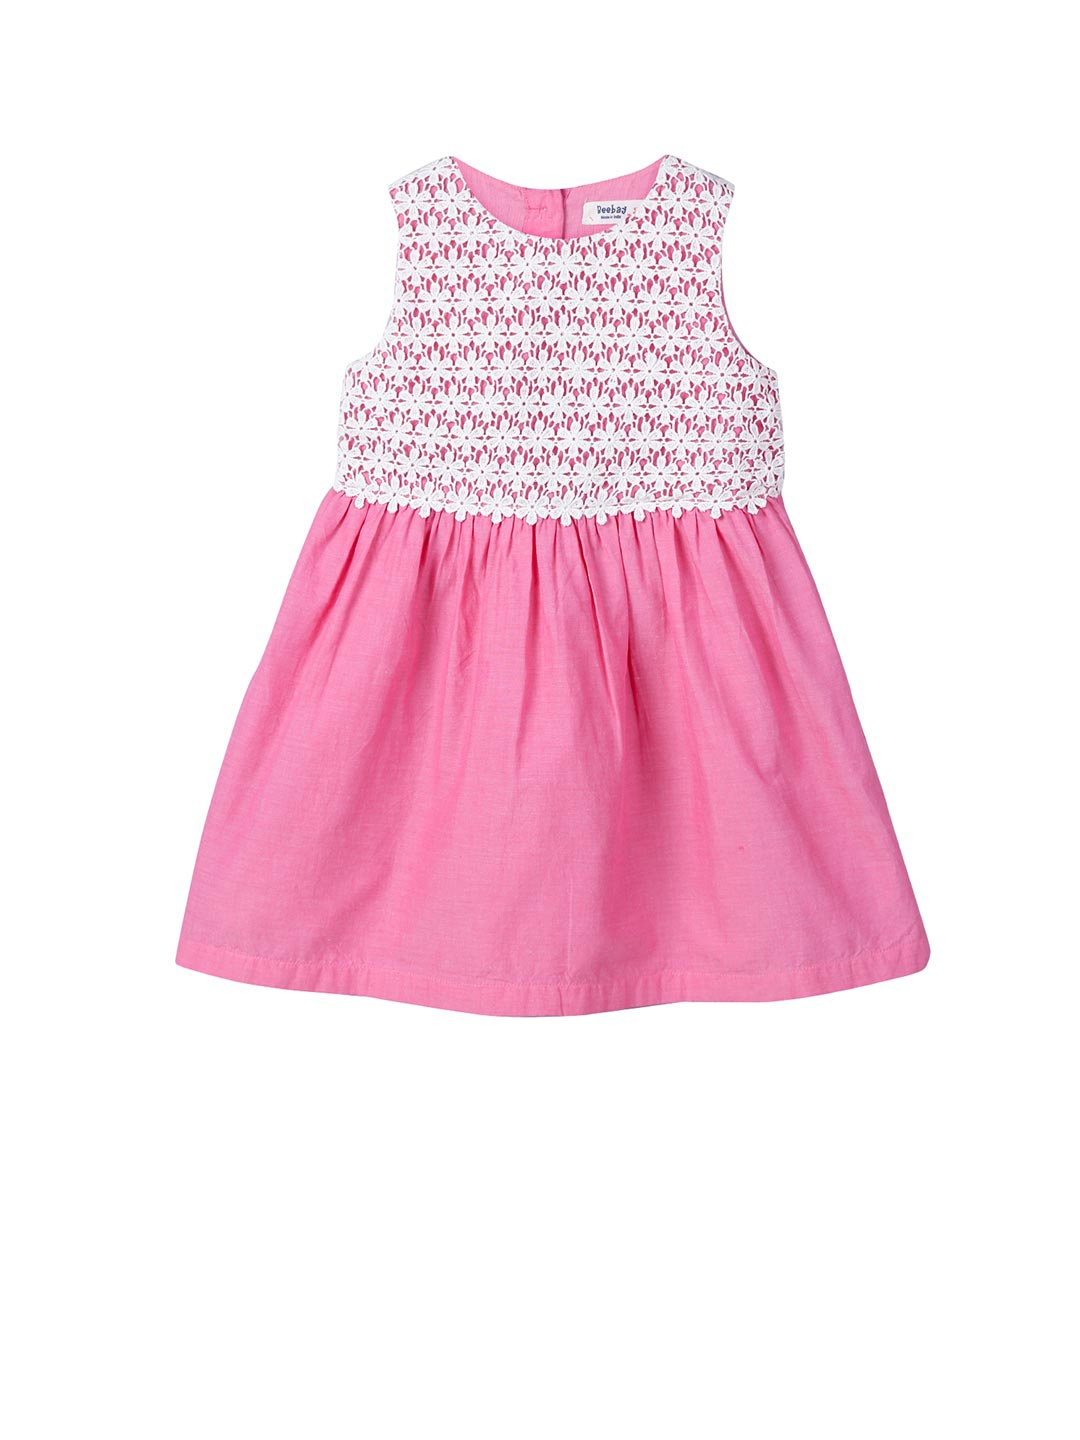 3b78c99b730 Beebay Girls Pink Lace Fit and Flare Dress